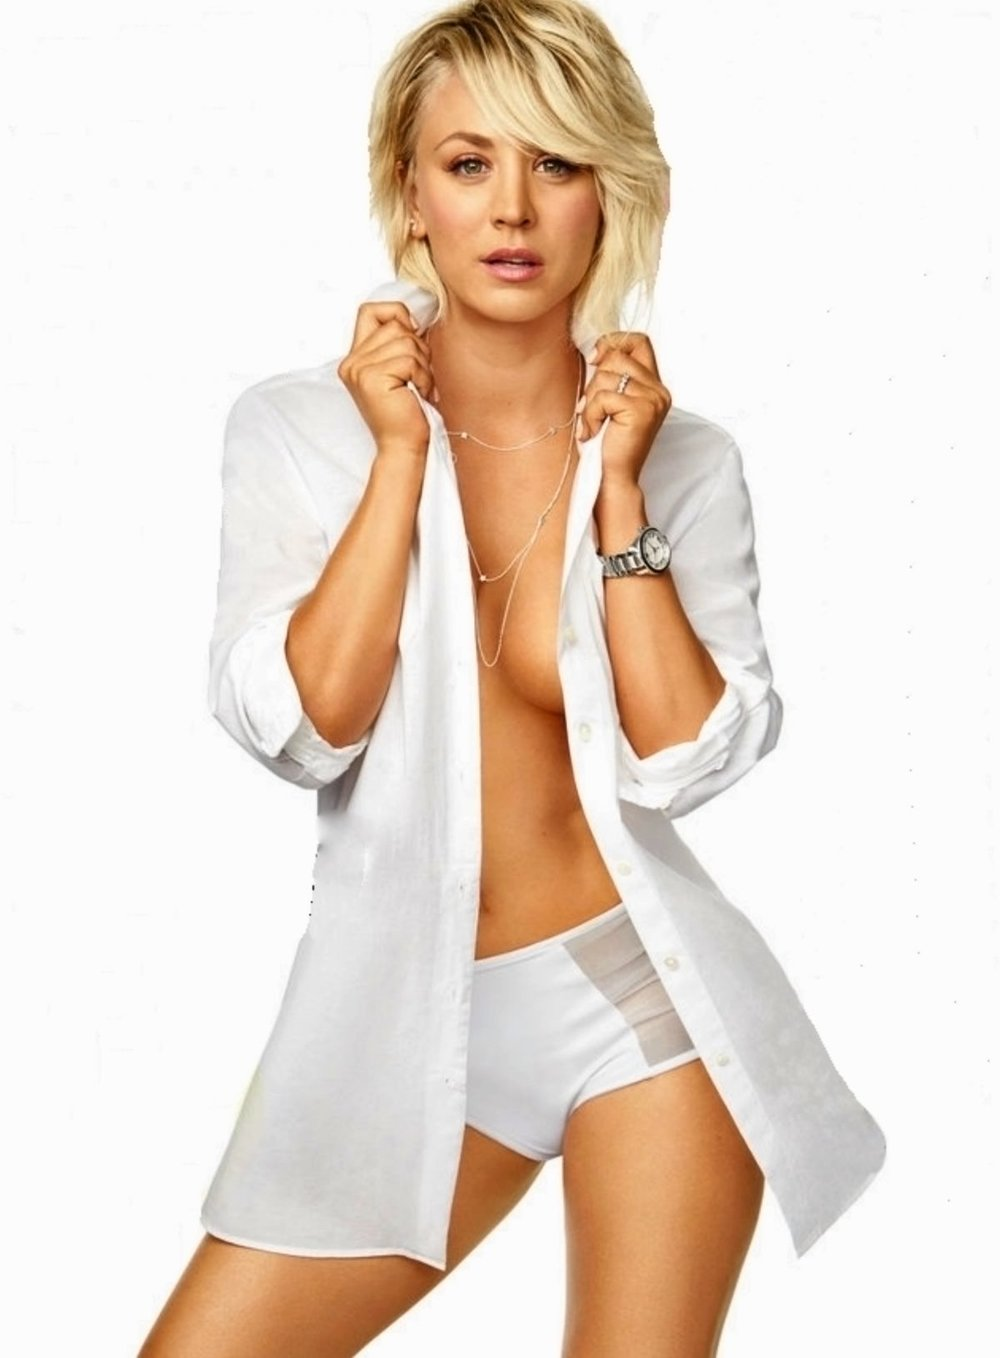 kaley-cuoco-in-shape-magazine-october-2015_4.jpg